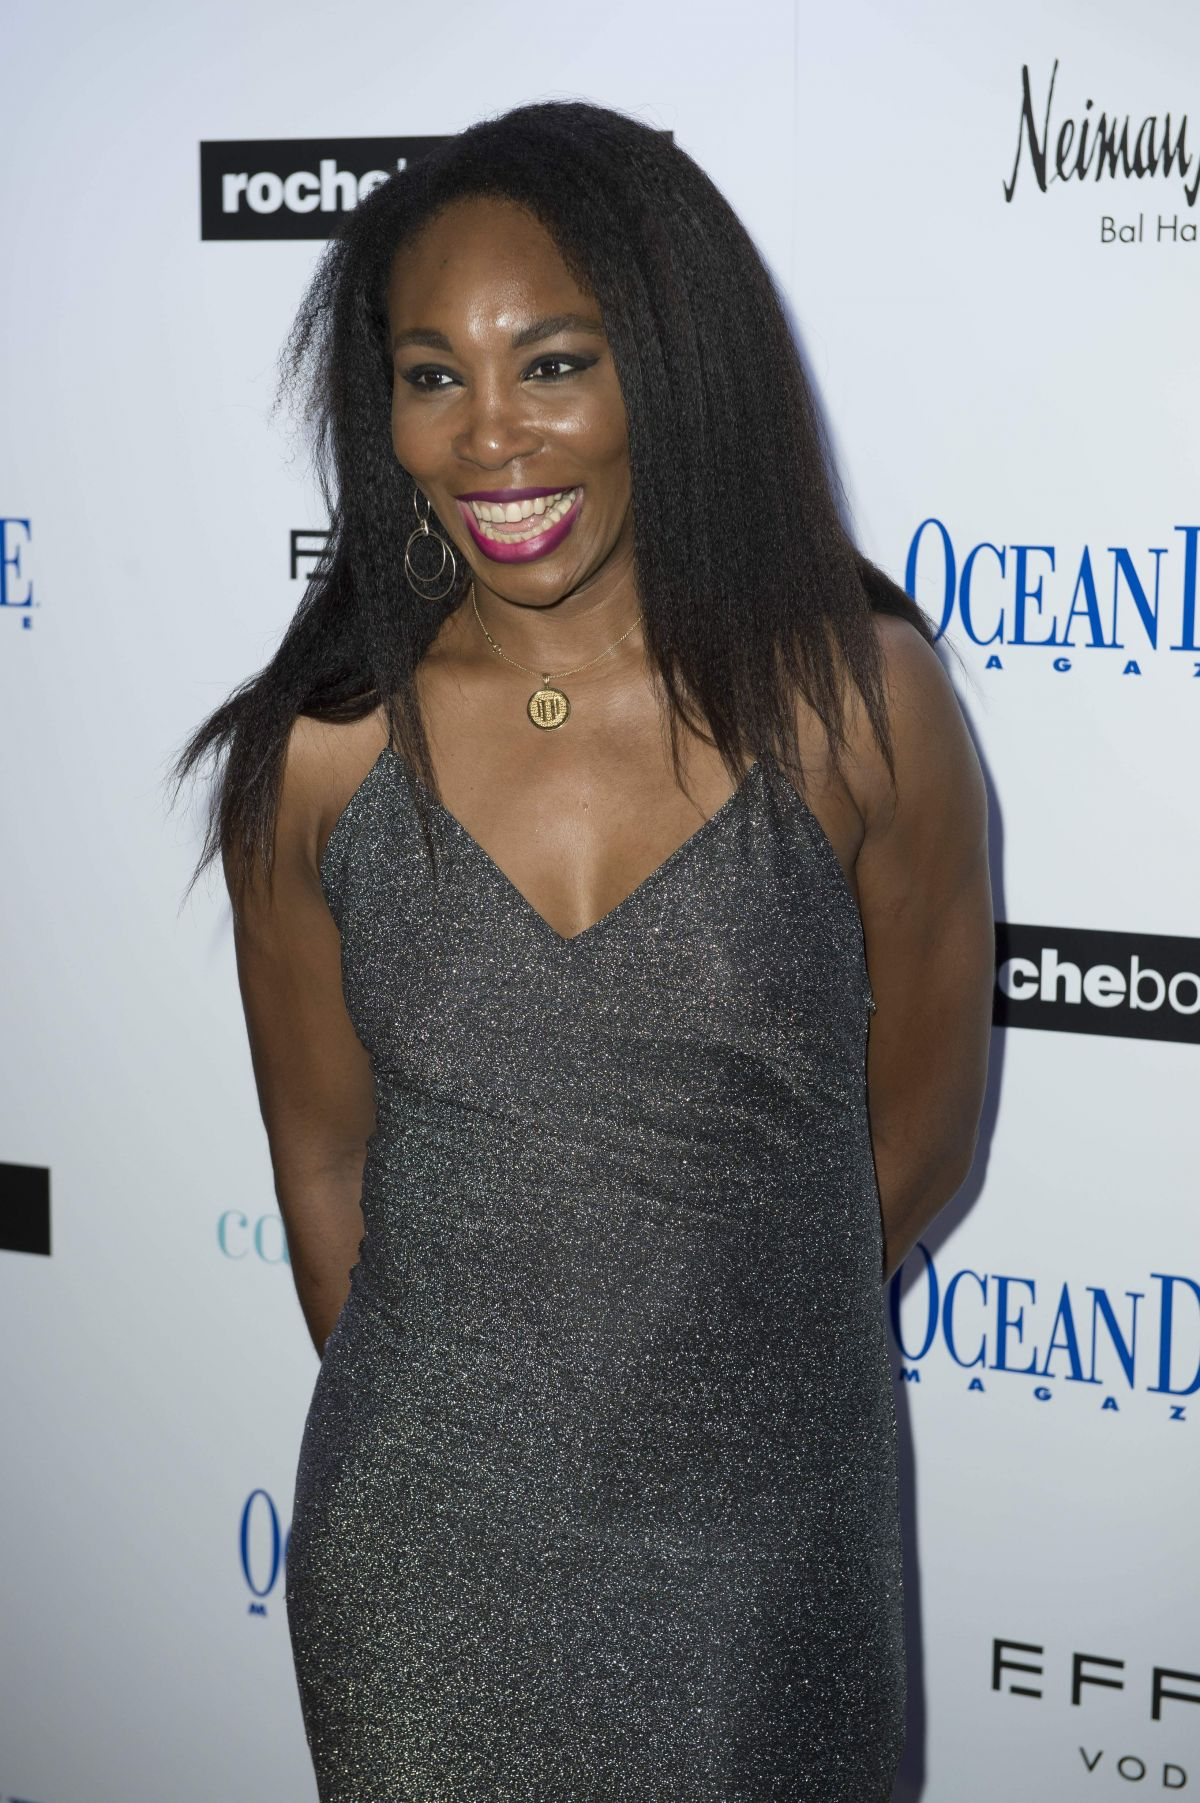 Venus Williams At Ocean Drive Magazine December Cover party in